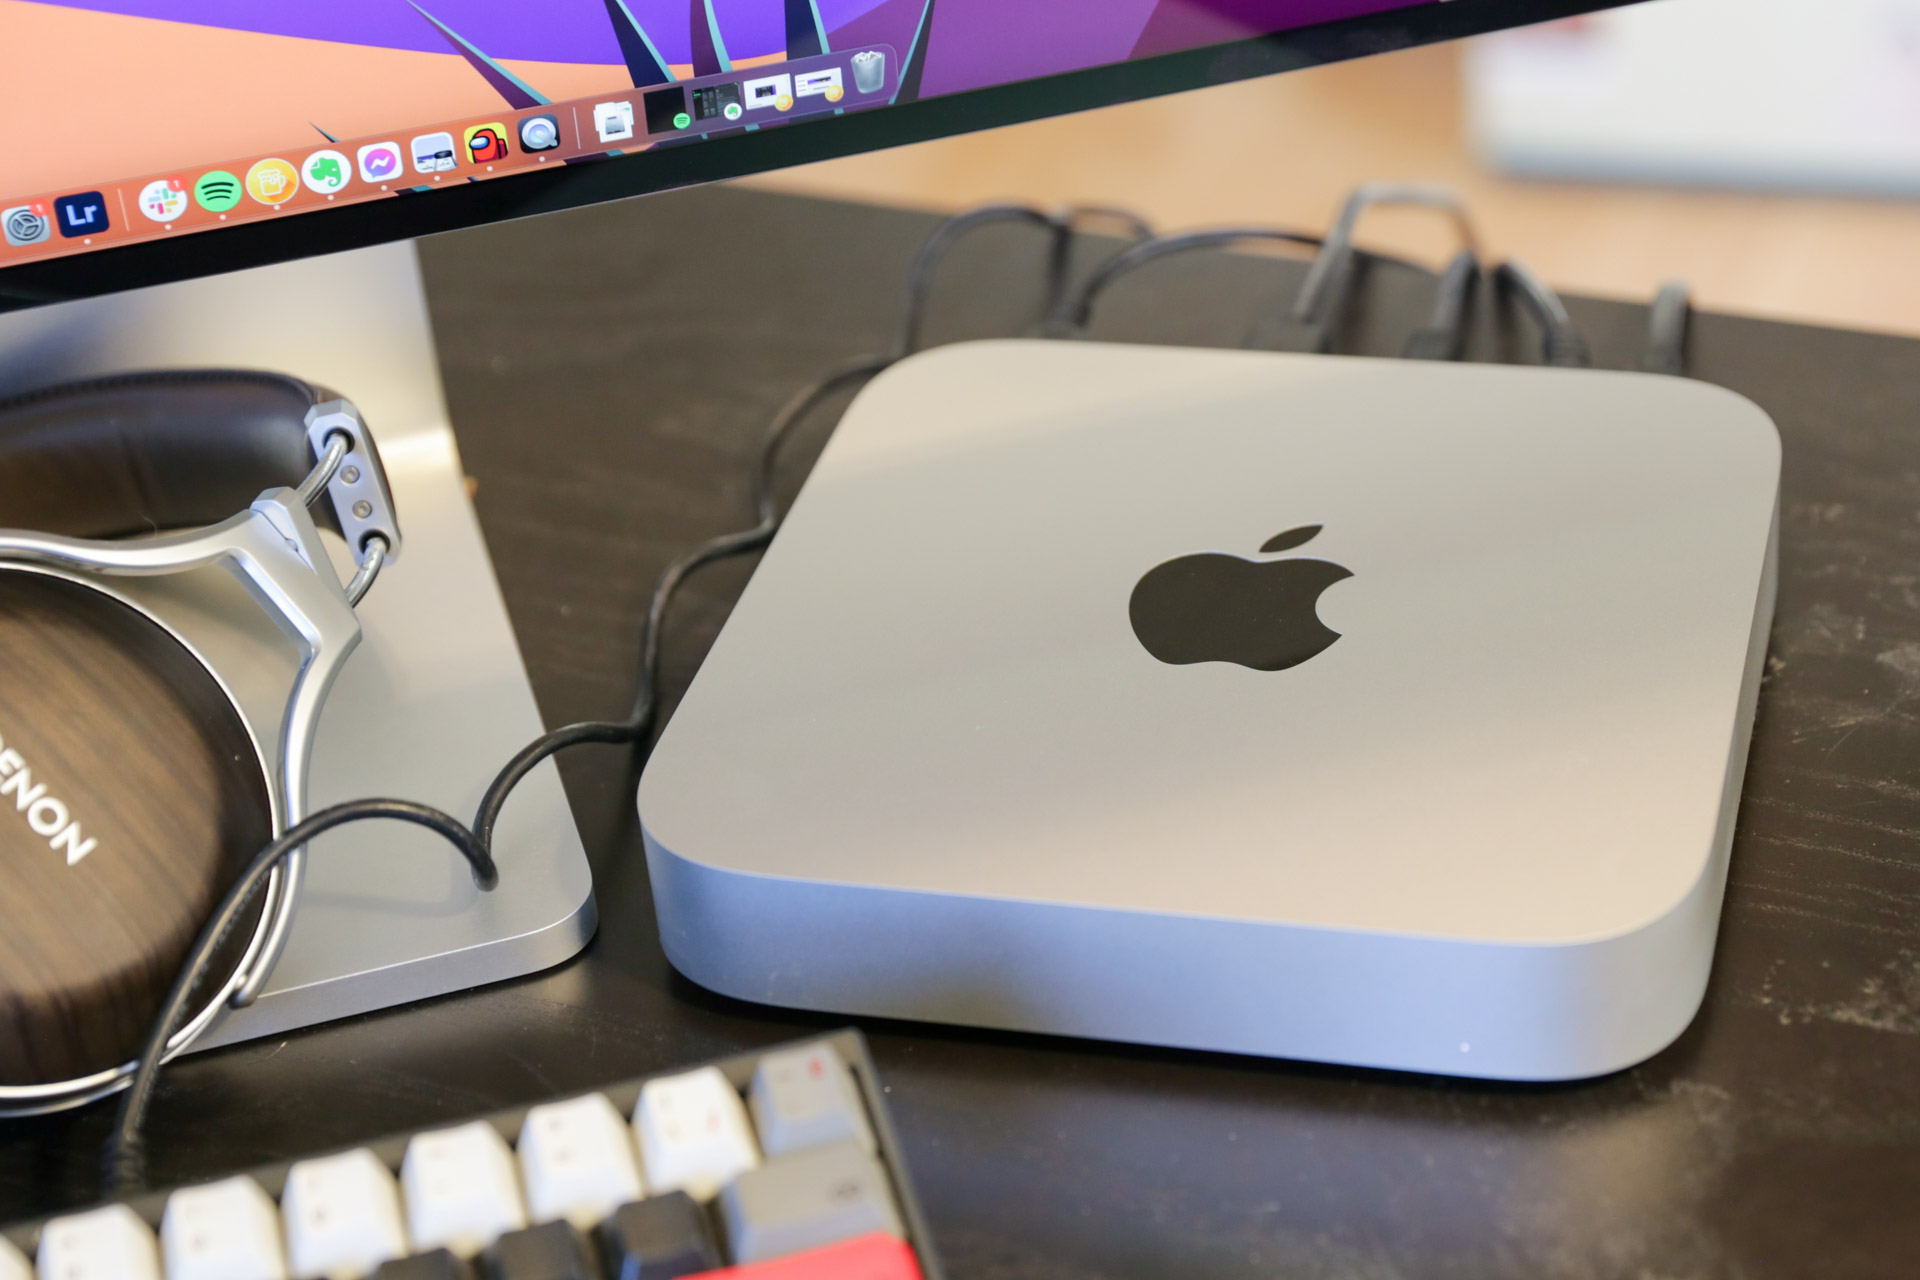 The new Mac mini: The revival of the no-compromise, low-cost Mac | TechCrunch